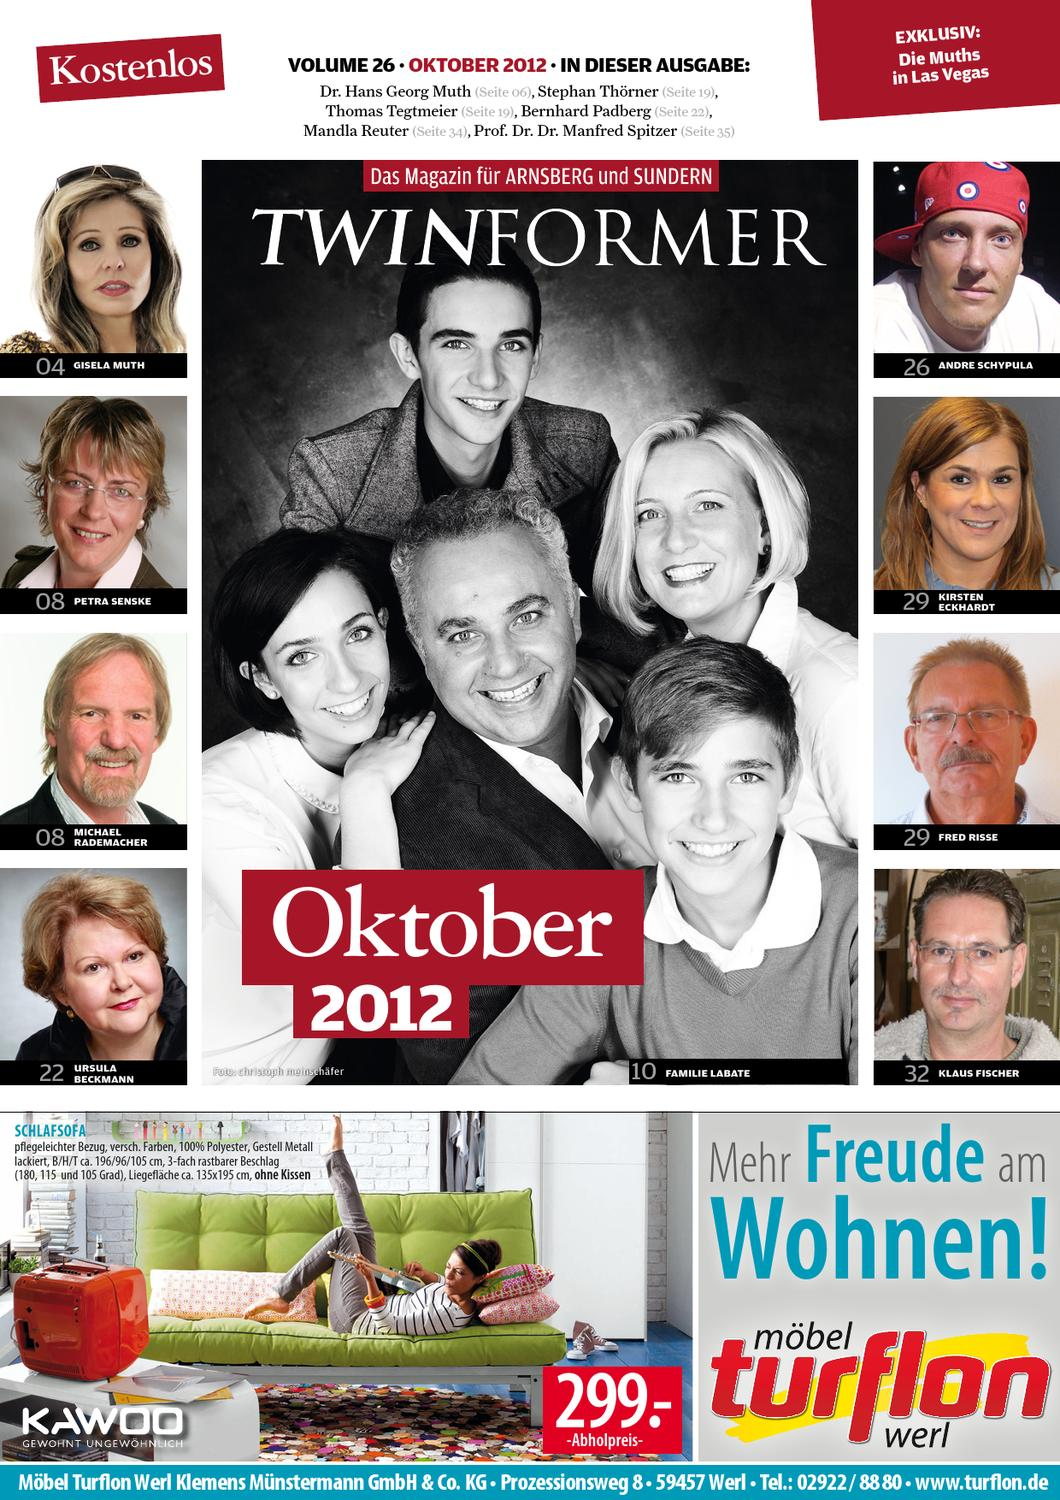 twinformer oktober 2012 by twinformer arnsberg sundern issuu. Black Bedroom Furniture Sets. Home Design Ideas